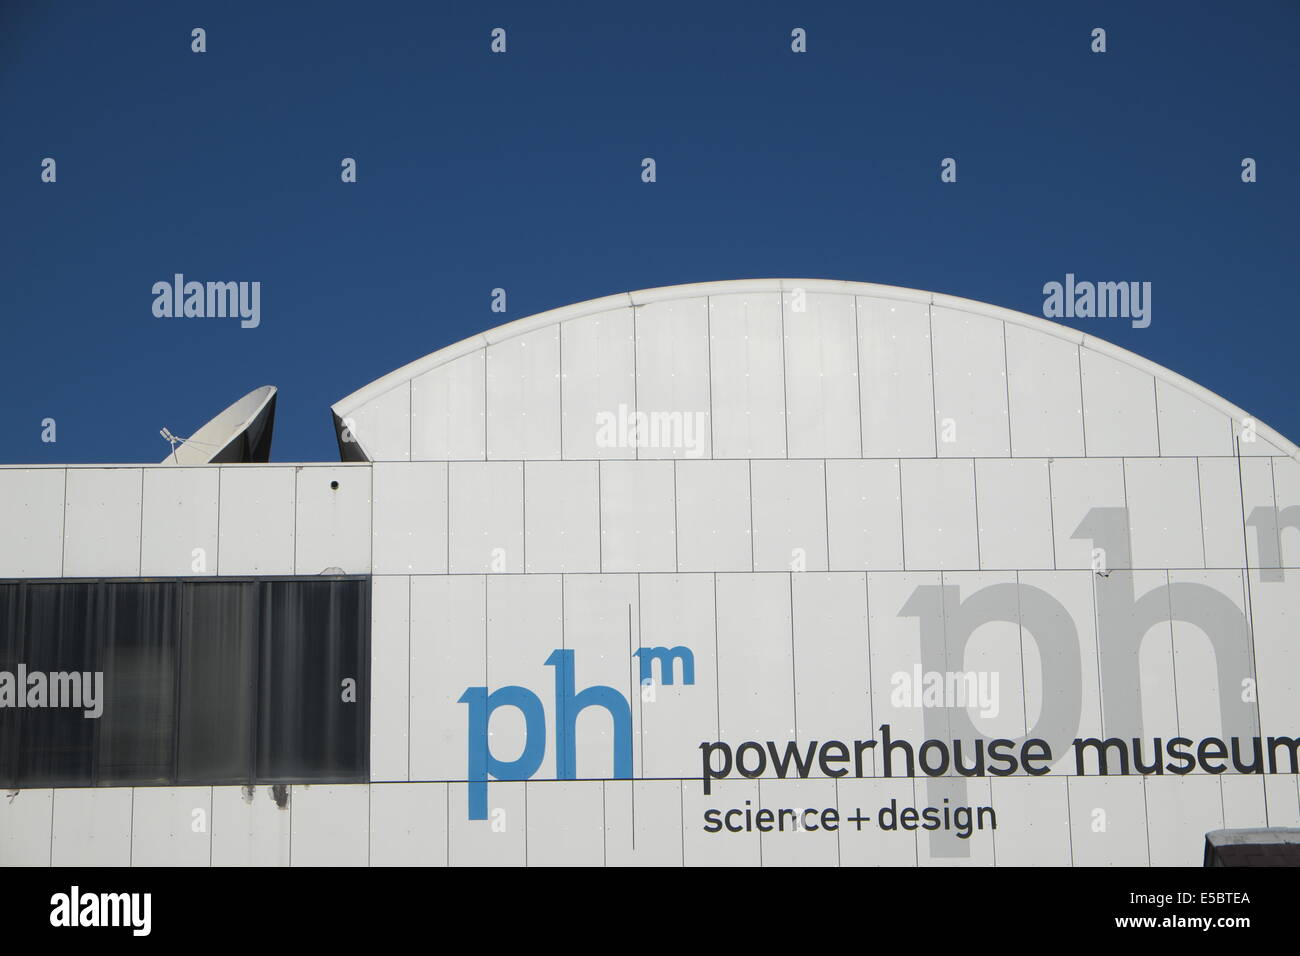 how to get to powerhouse museum from darling harbour